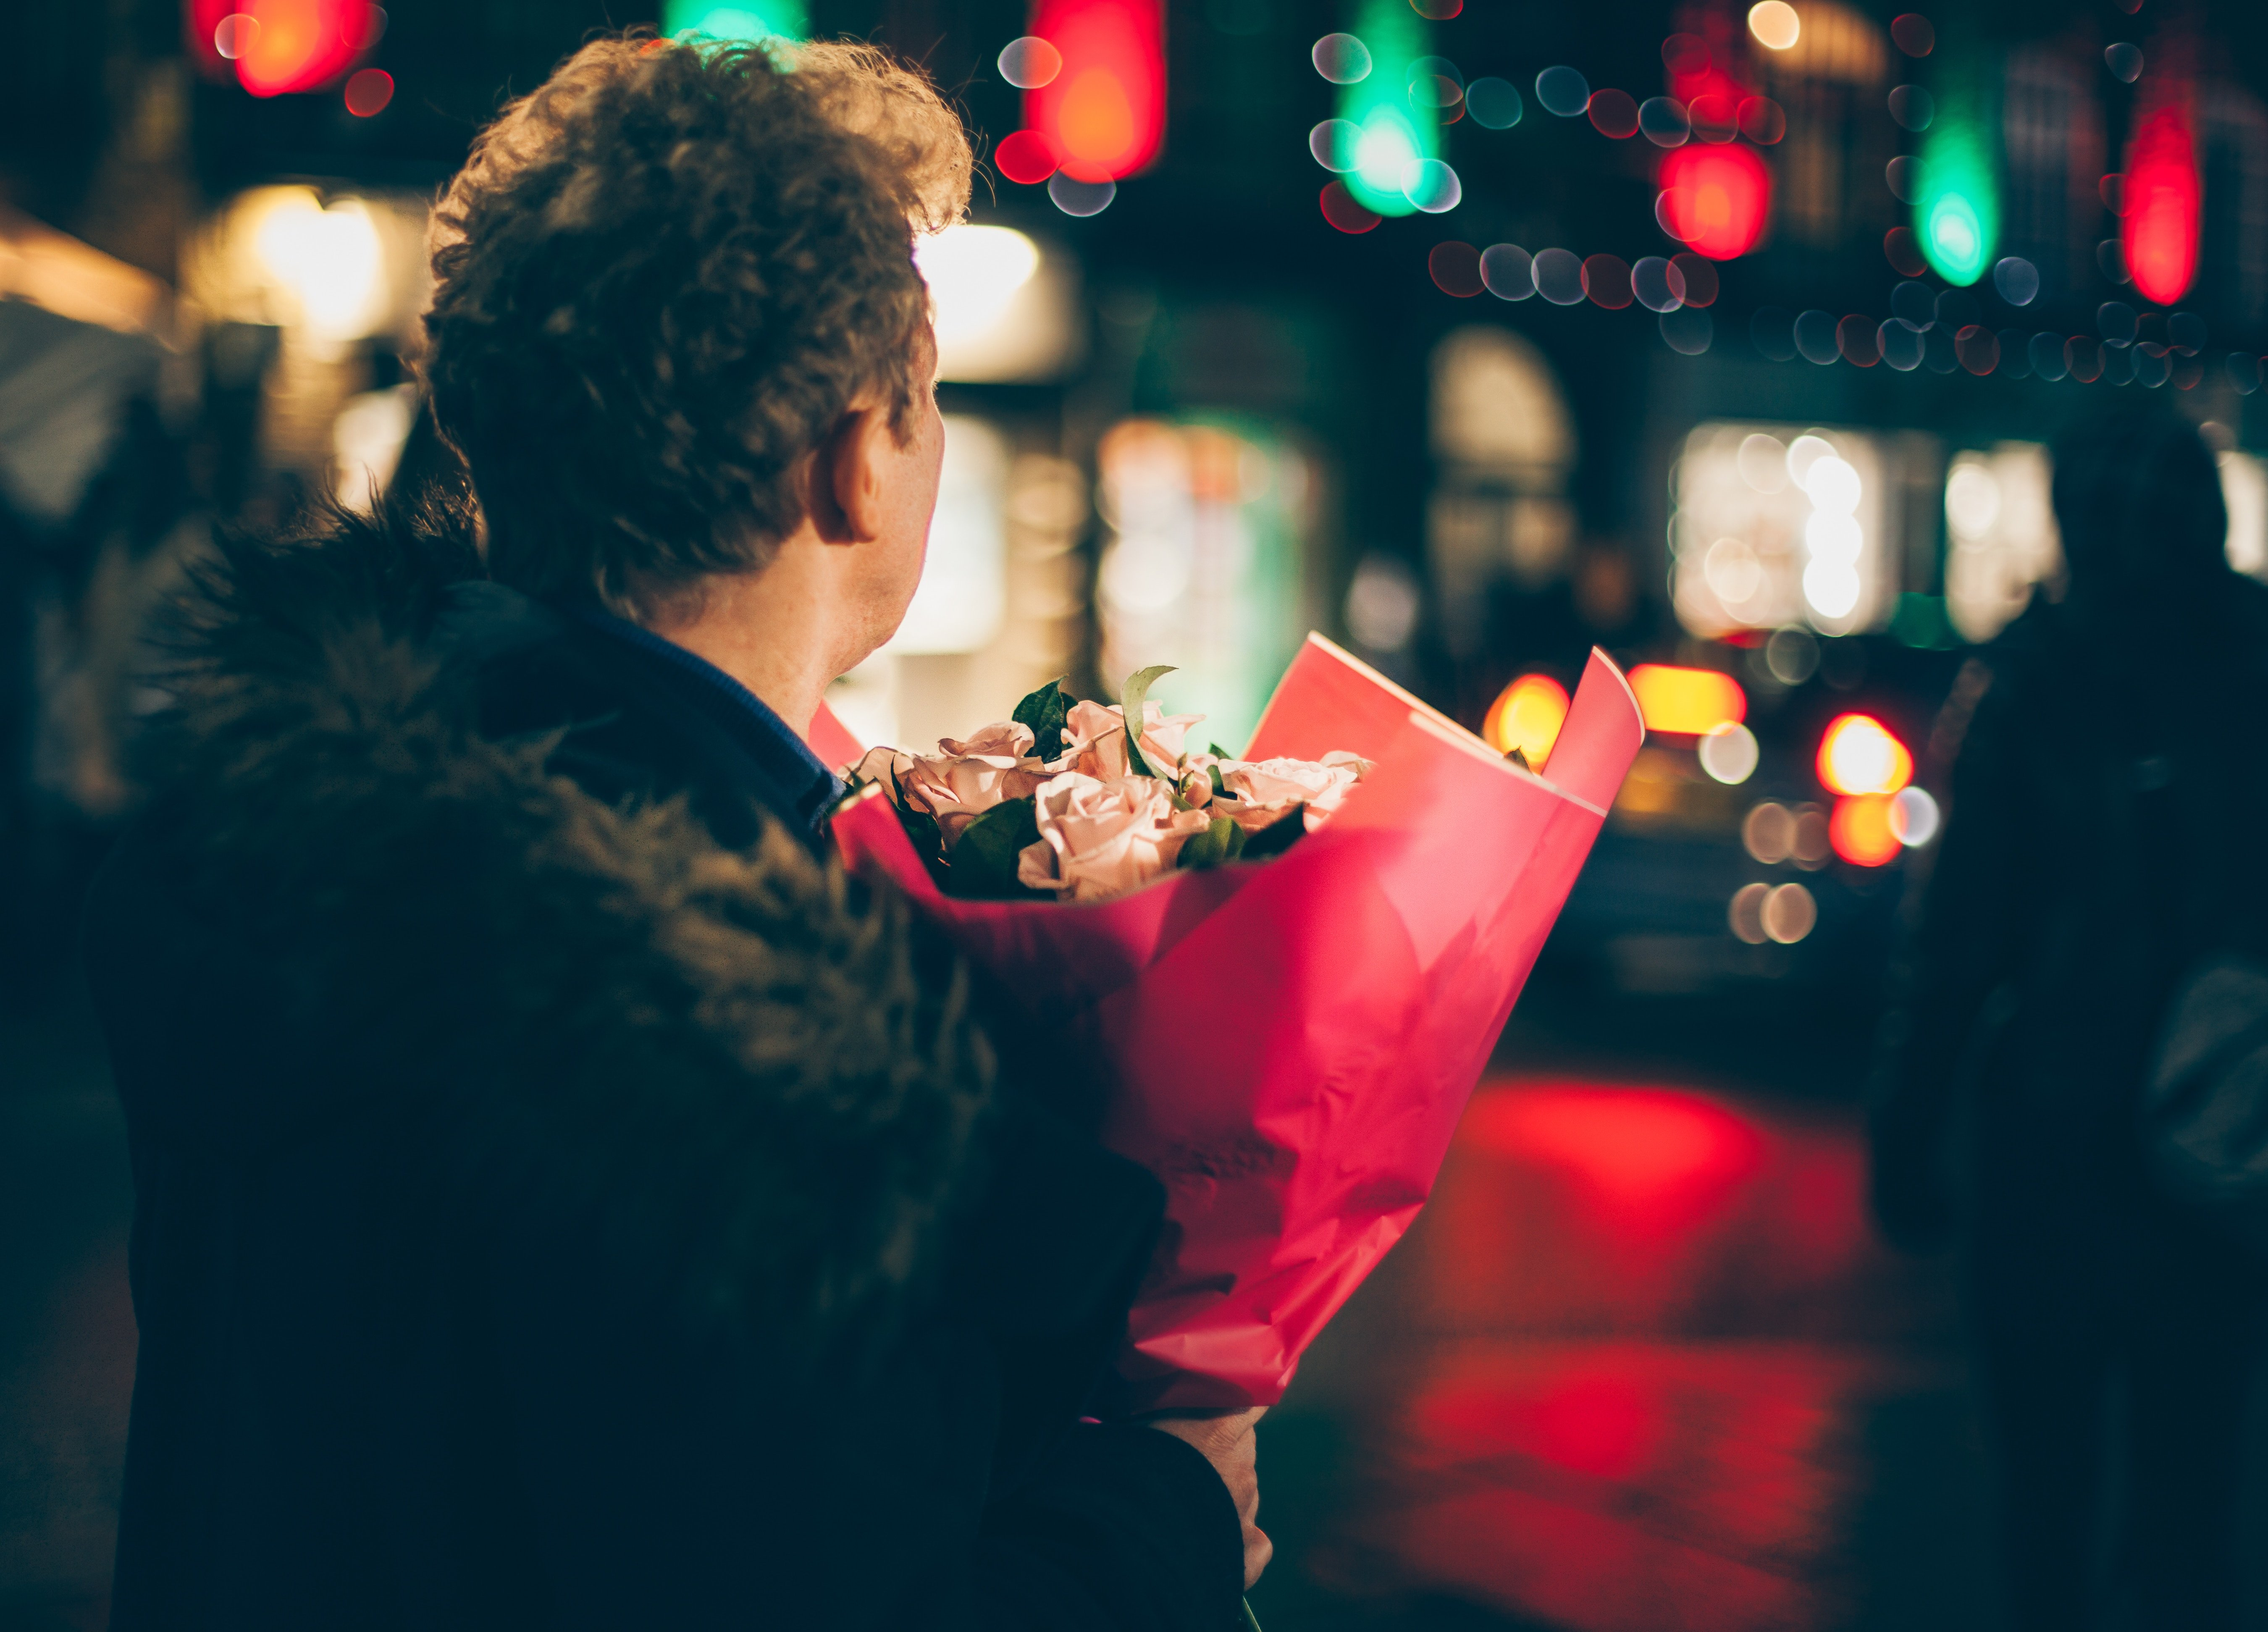 man waits at a bright lit up intersection carrying a bouquet of flowers